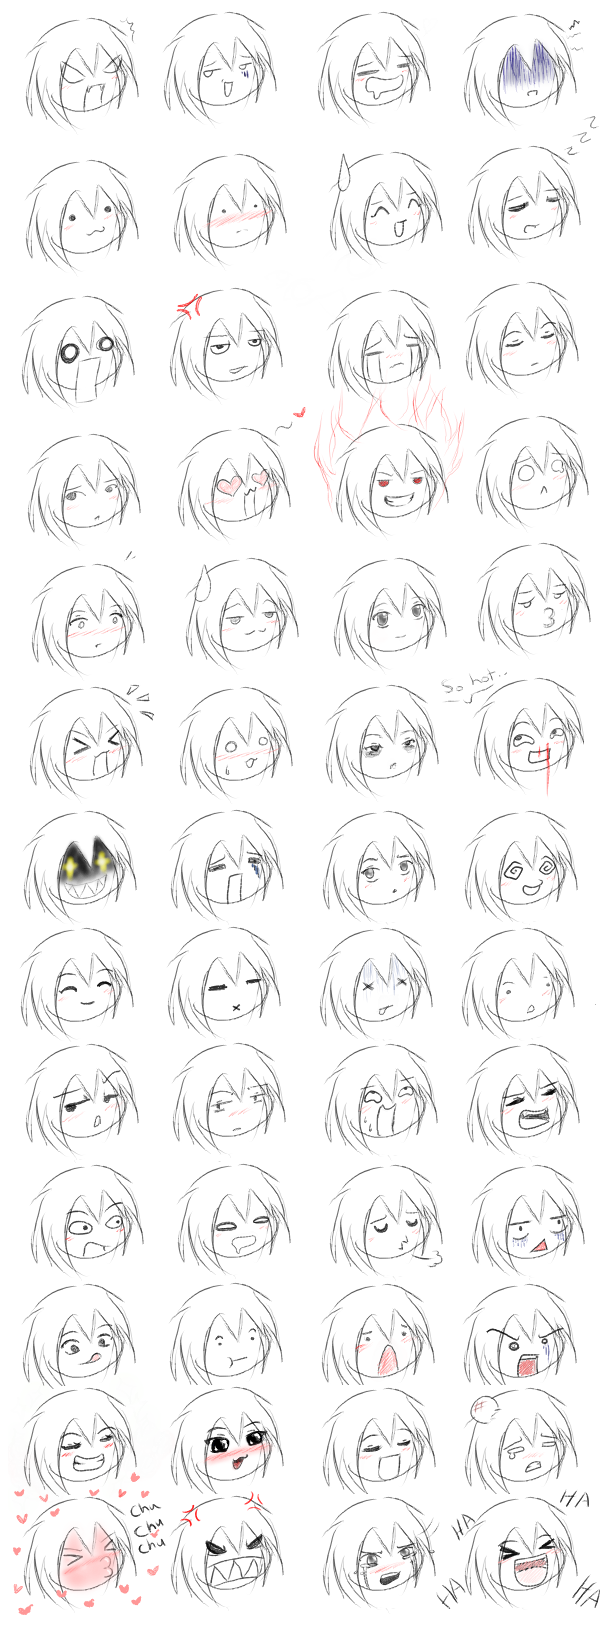 52 anime expressions by Jemstonecat on DeviantArt